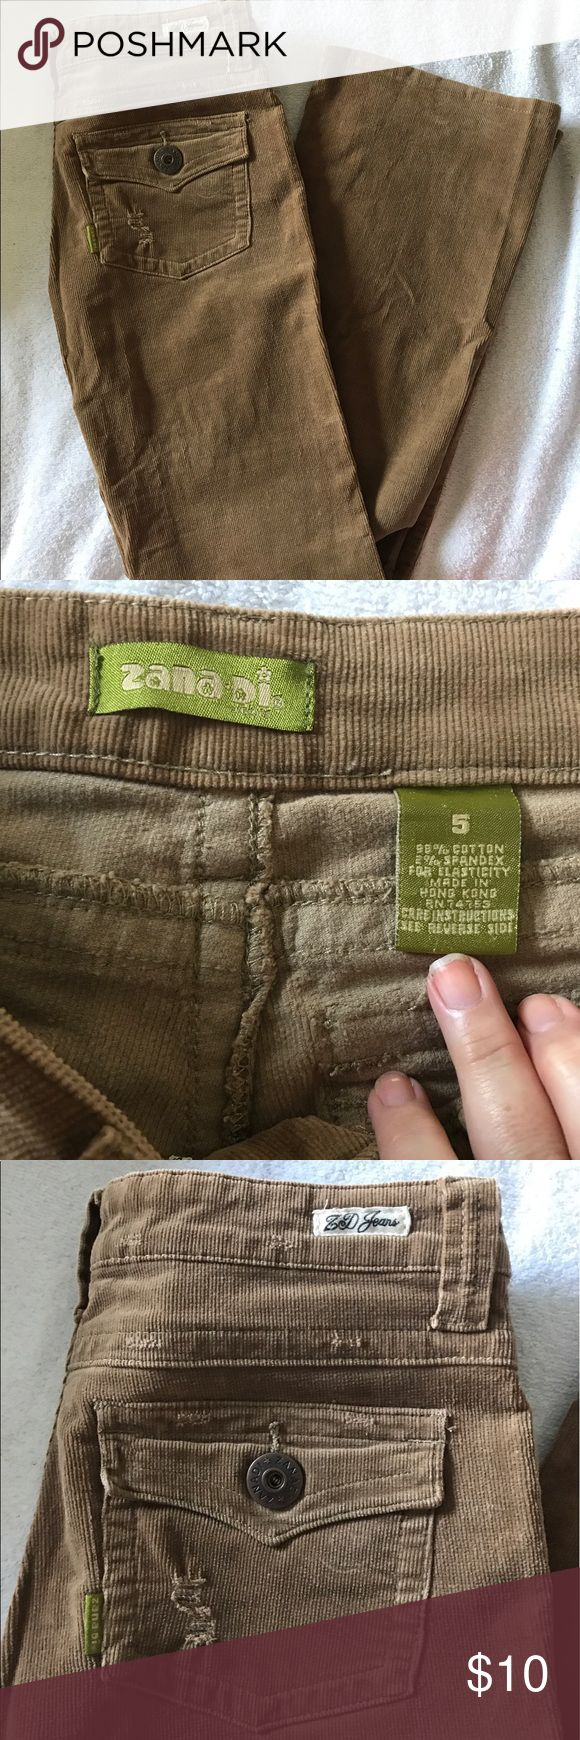 NEW Zanadi Corduroy Tan Jeans Straight Leg Sz: 5 New without tags Zanadi Corduroy Tan Jeans Straight Leg, bought at JCP, it was gift, never used. Sz: 5❤️PLUS BUNDLE & SAVE! 💵 20% OFF ANY BUNDLE AND FREE GIFT!! 🎁 Zanadi Jeans Straight Leg